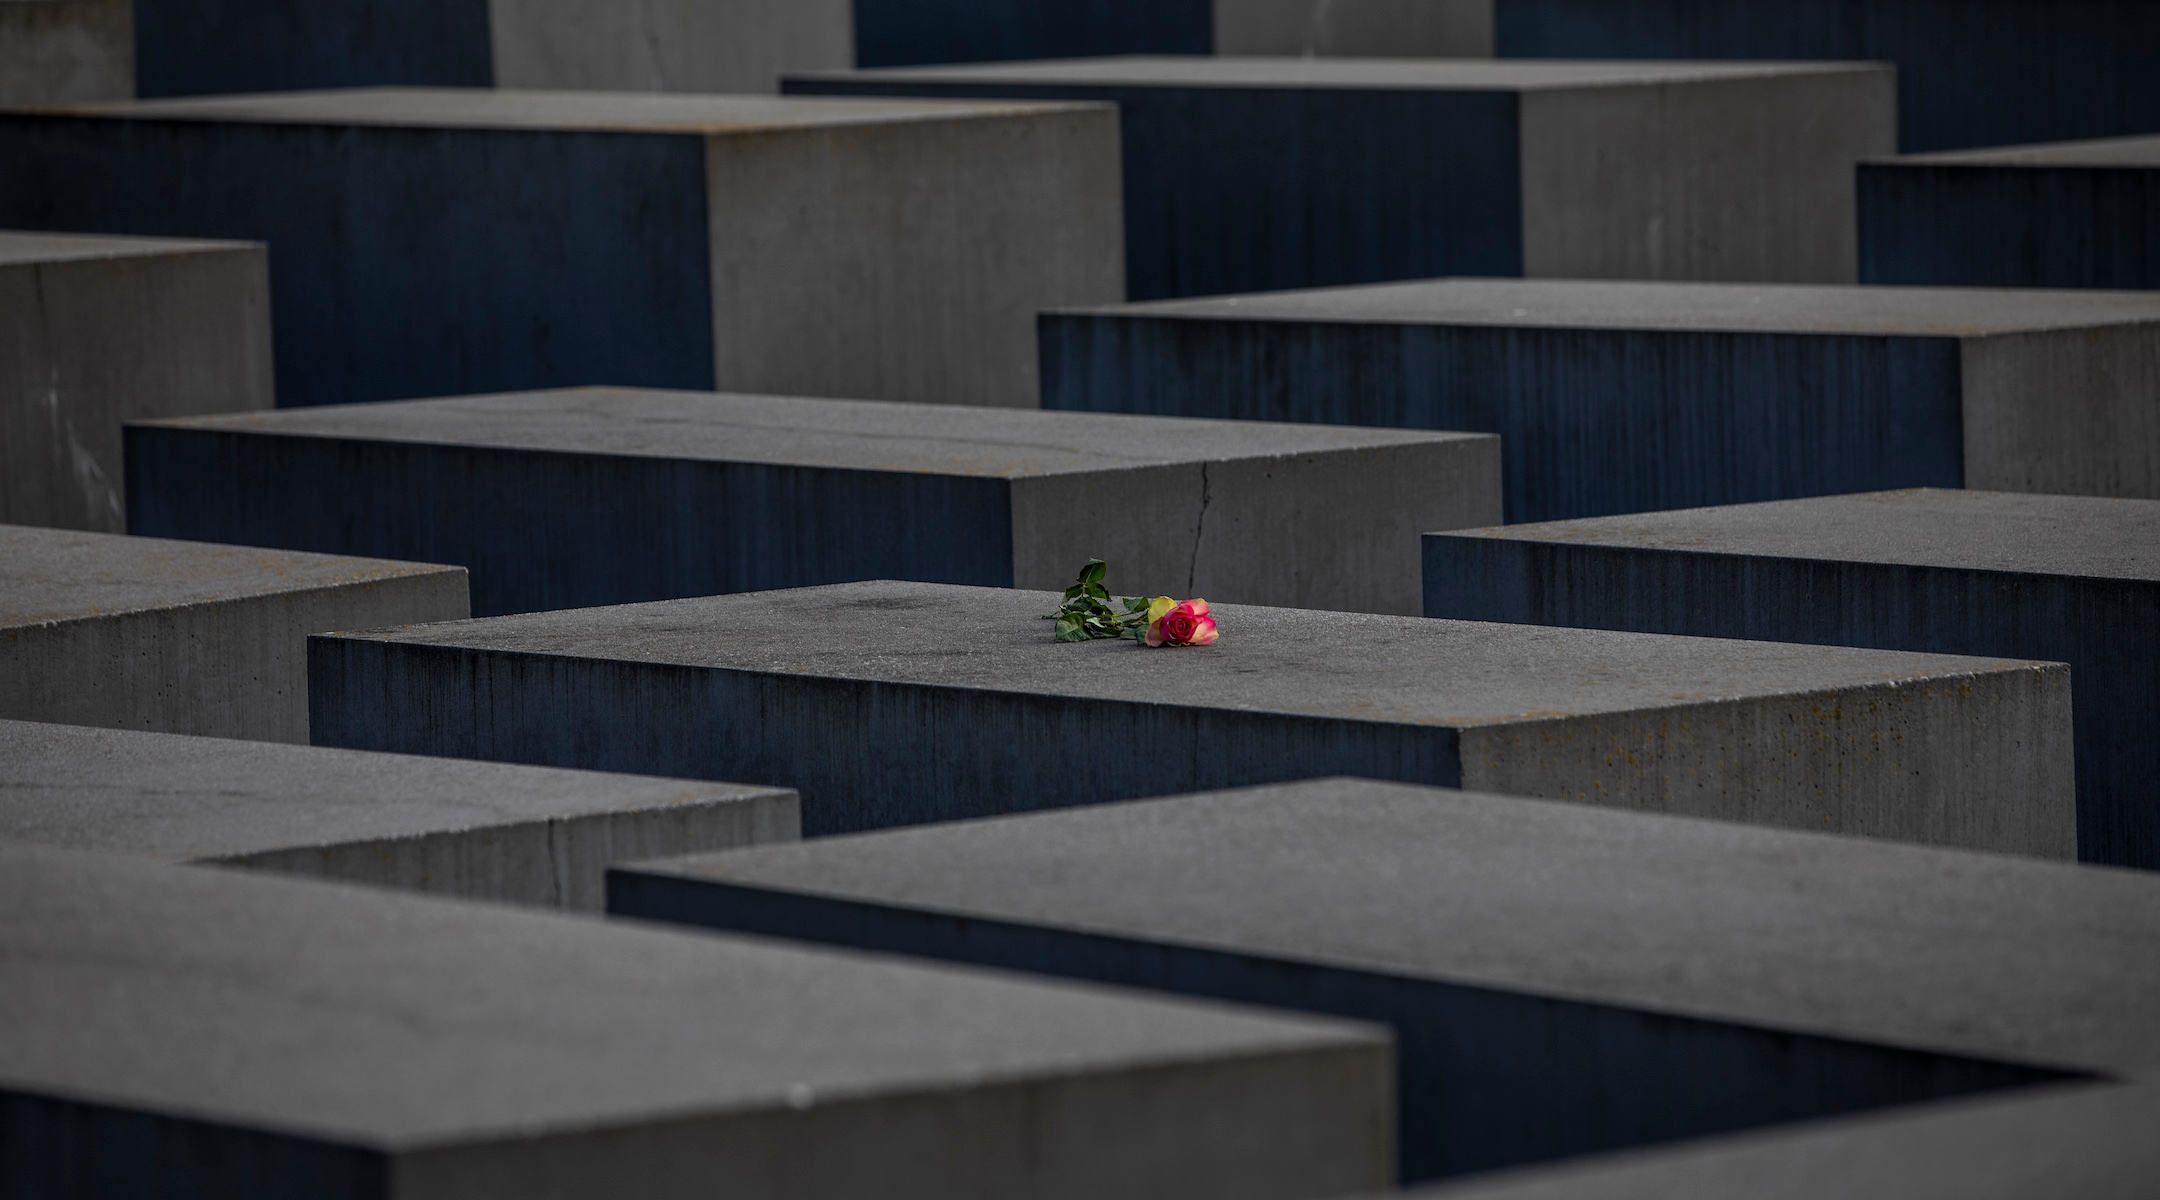 Holocaust survivors are dwindling out. A new Yom Hashoah ritual recognizes that.